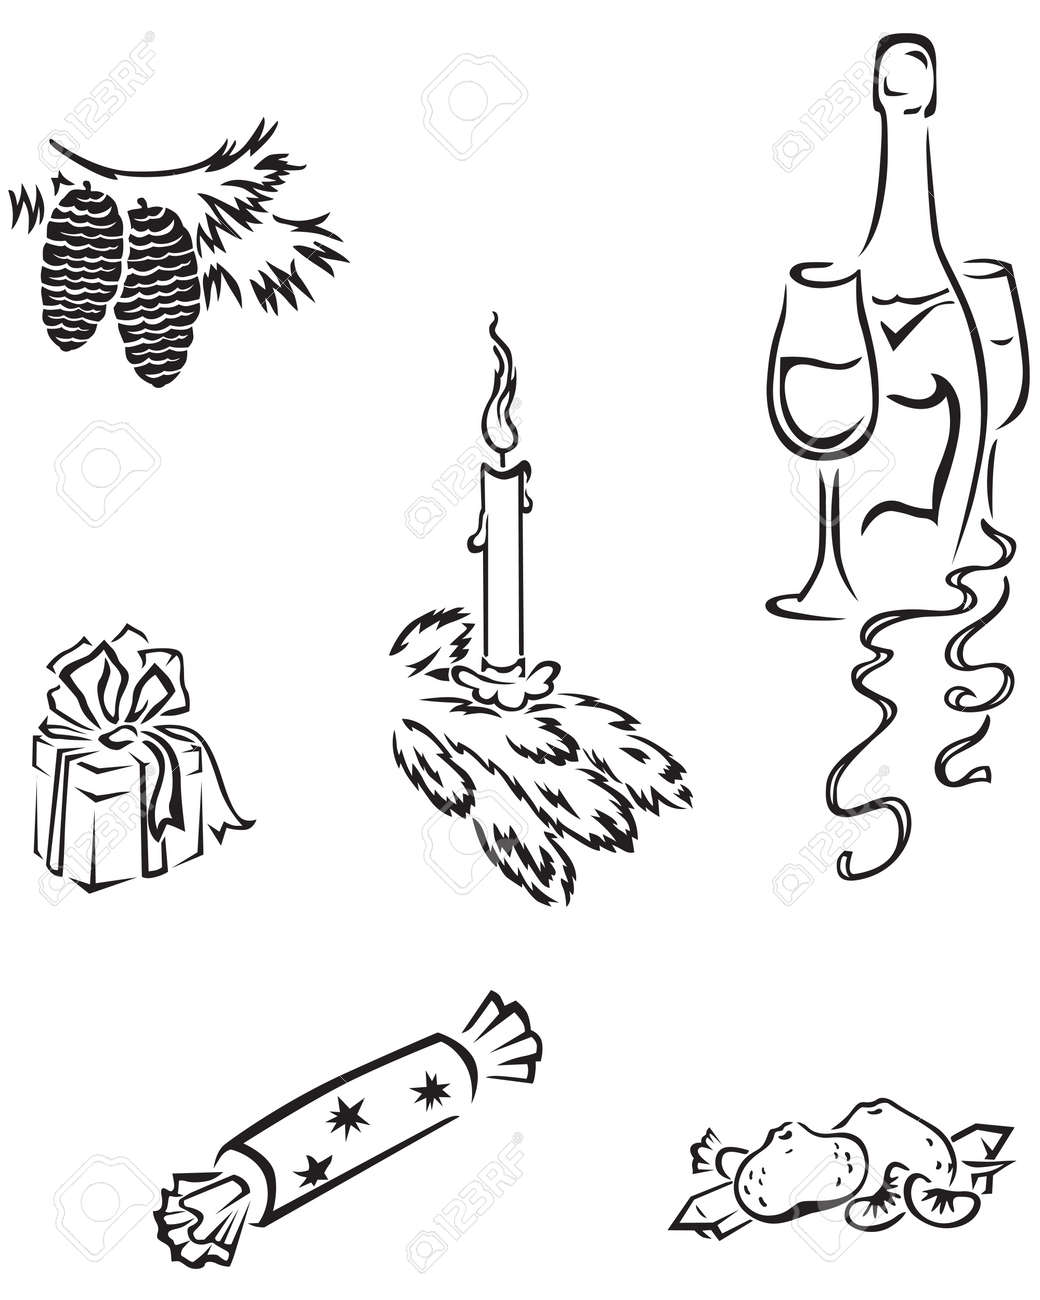 A set of images for the New Year Stock Vector - 15635512